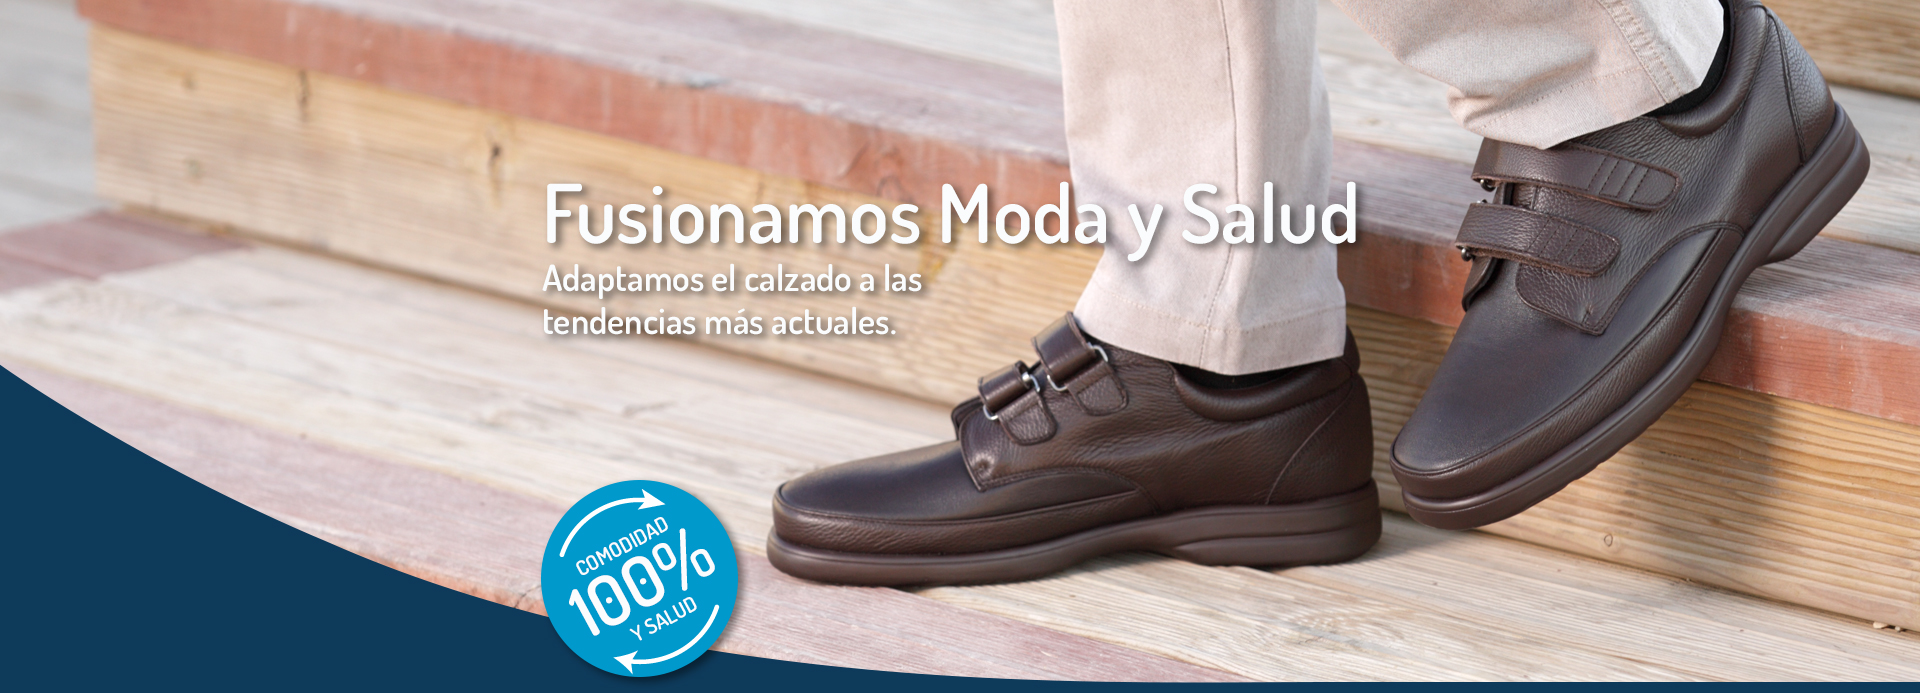 slider-mabel-shoes-3-texto